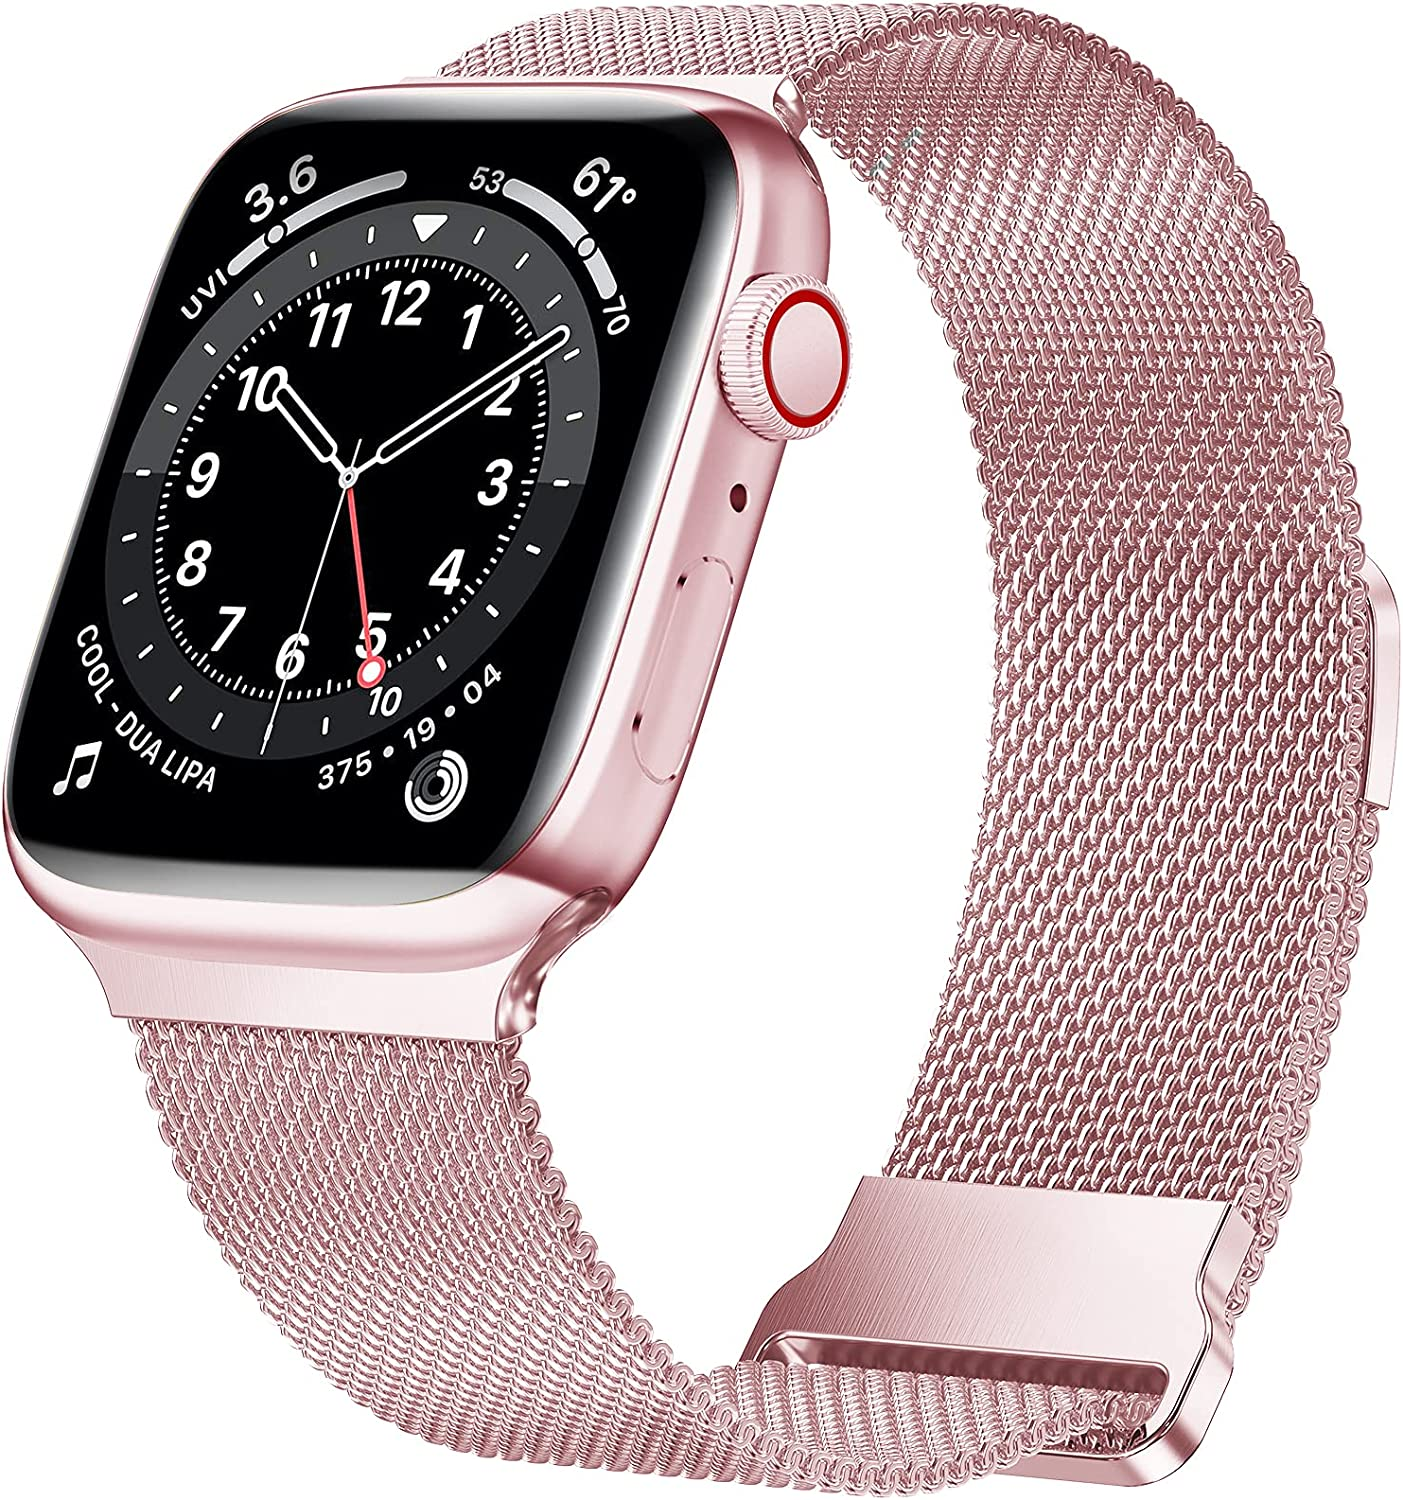 JuQBanke Magnetic Band Compatible with Apple Watch 42mm 44mm 45mm, Stainless Steel Mesh Milanese Strap with Adjustable Loop, Metal band for iWatch SE Series 7 6 5 4 3 2 1 for Women Men, Rose Pink Gold